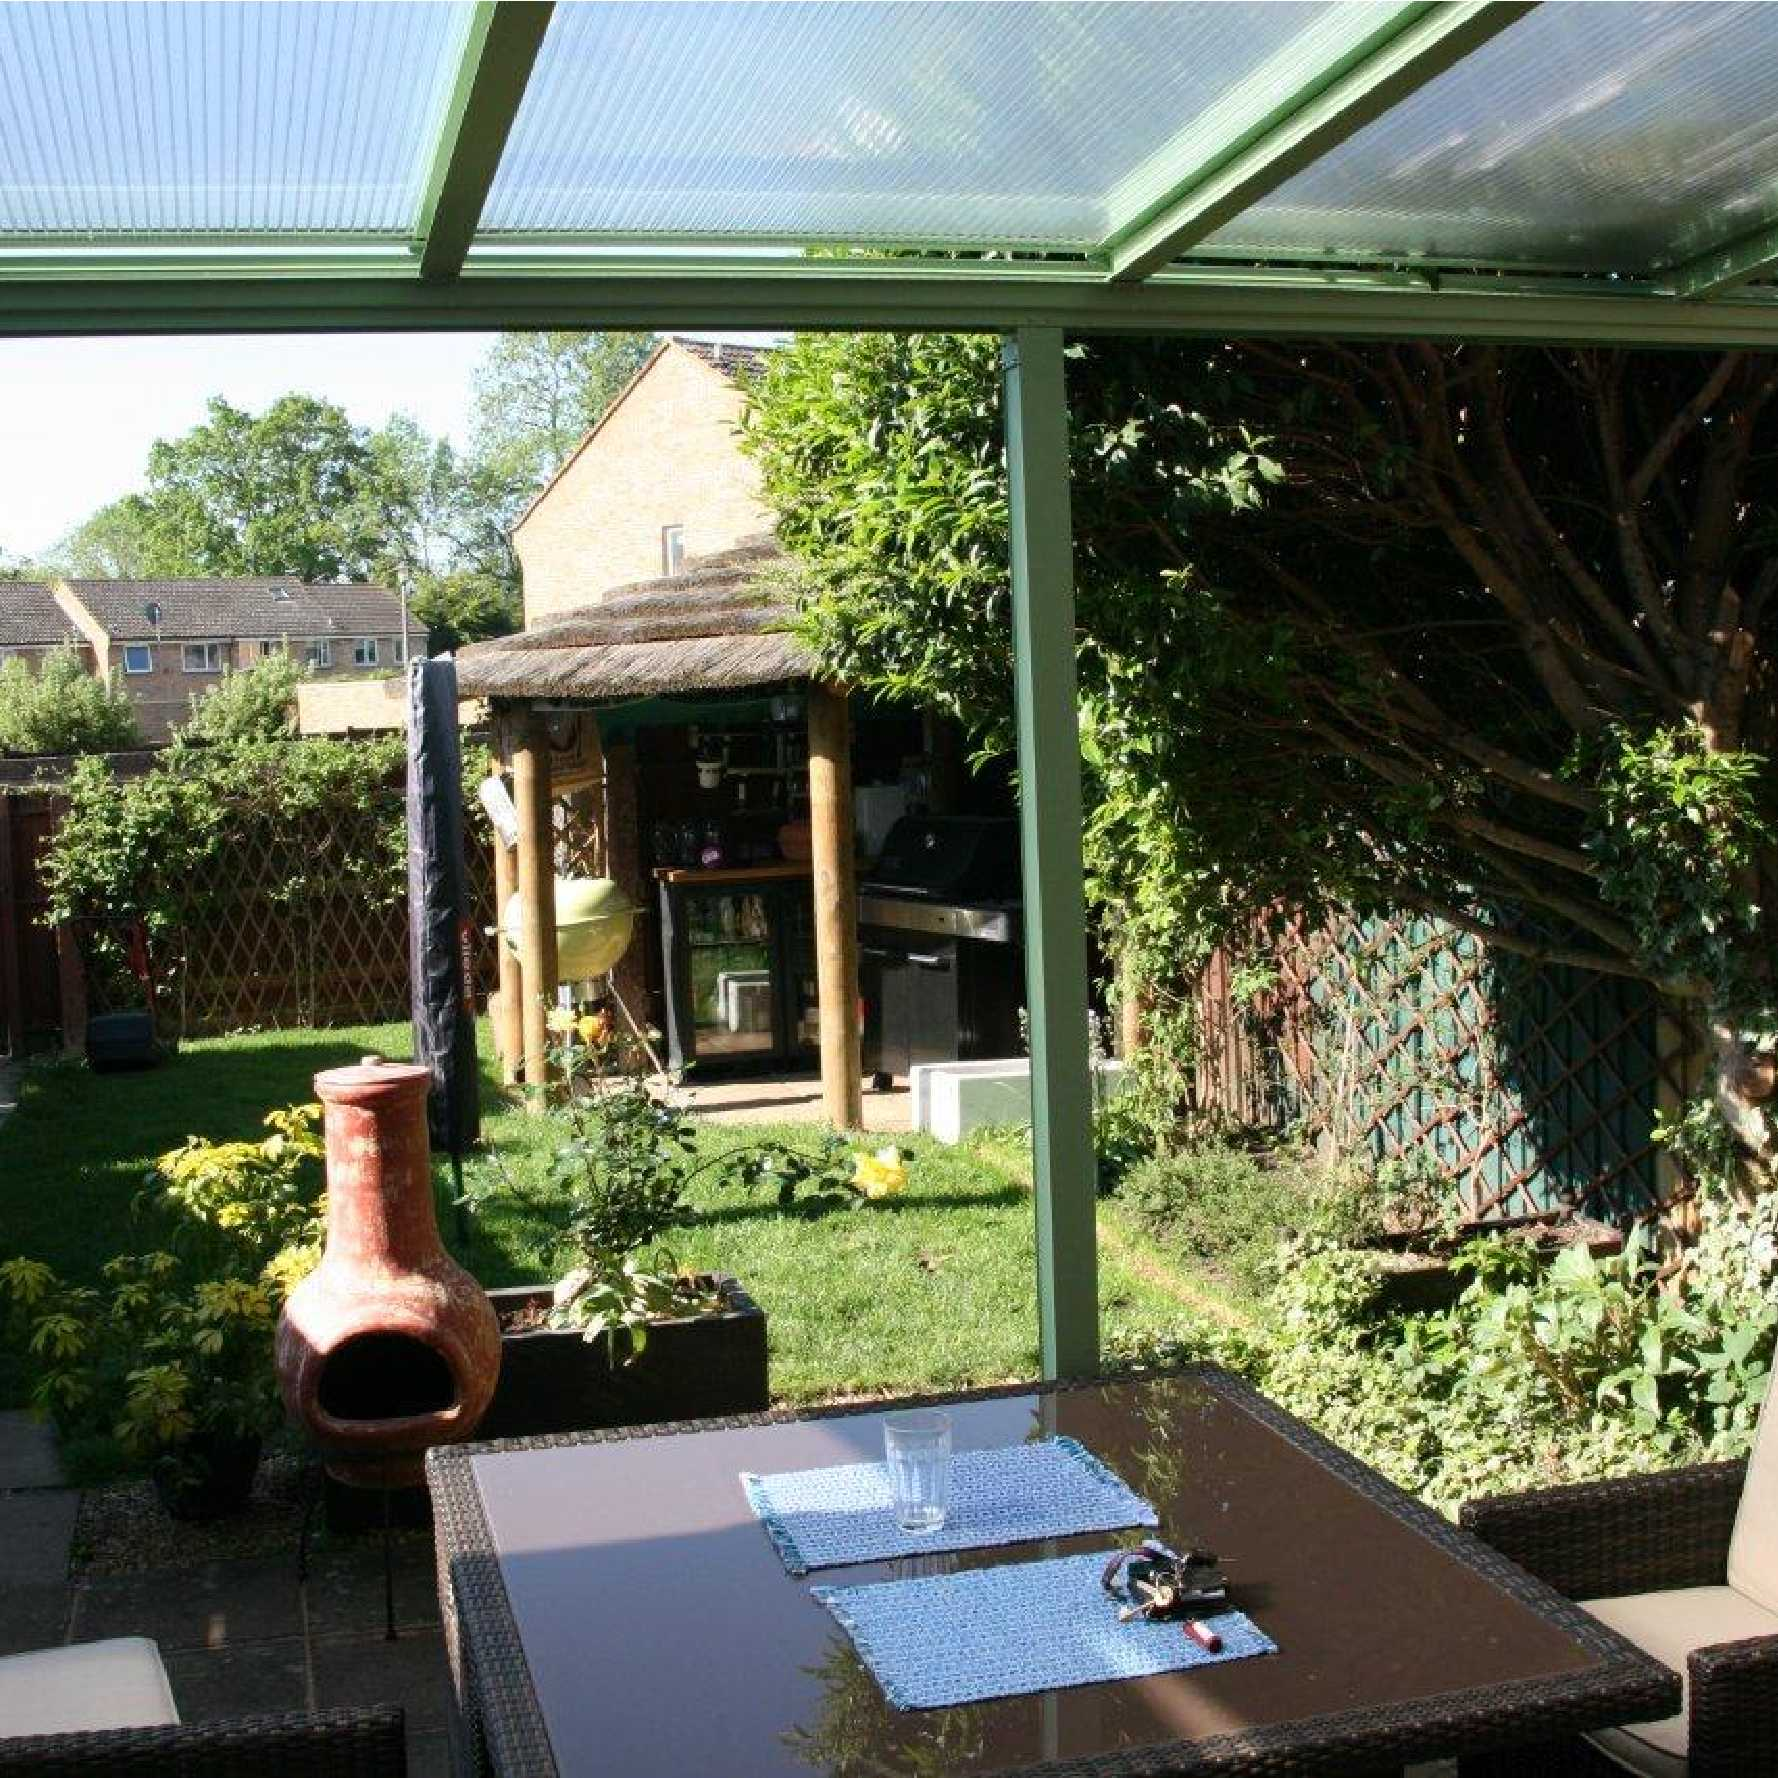 Affordable Omega Smart Lean-To Canopy with 16mm Polycarbonate Glazing - 10.2m (W) x 4.5m (P), (5) Supporting Posts